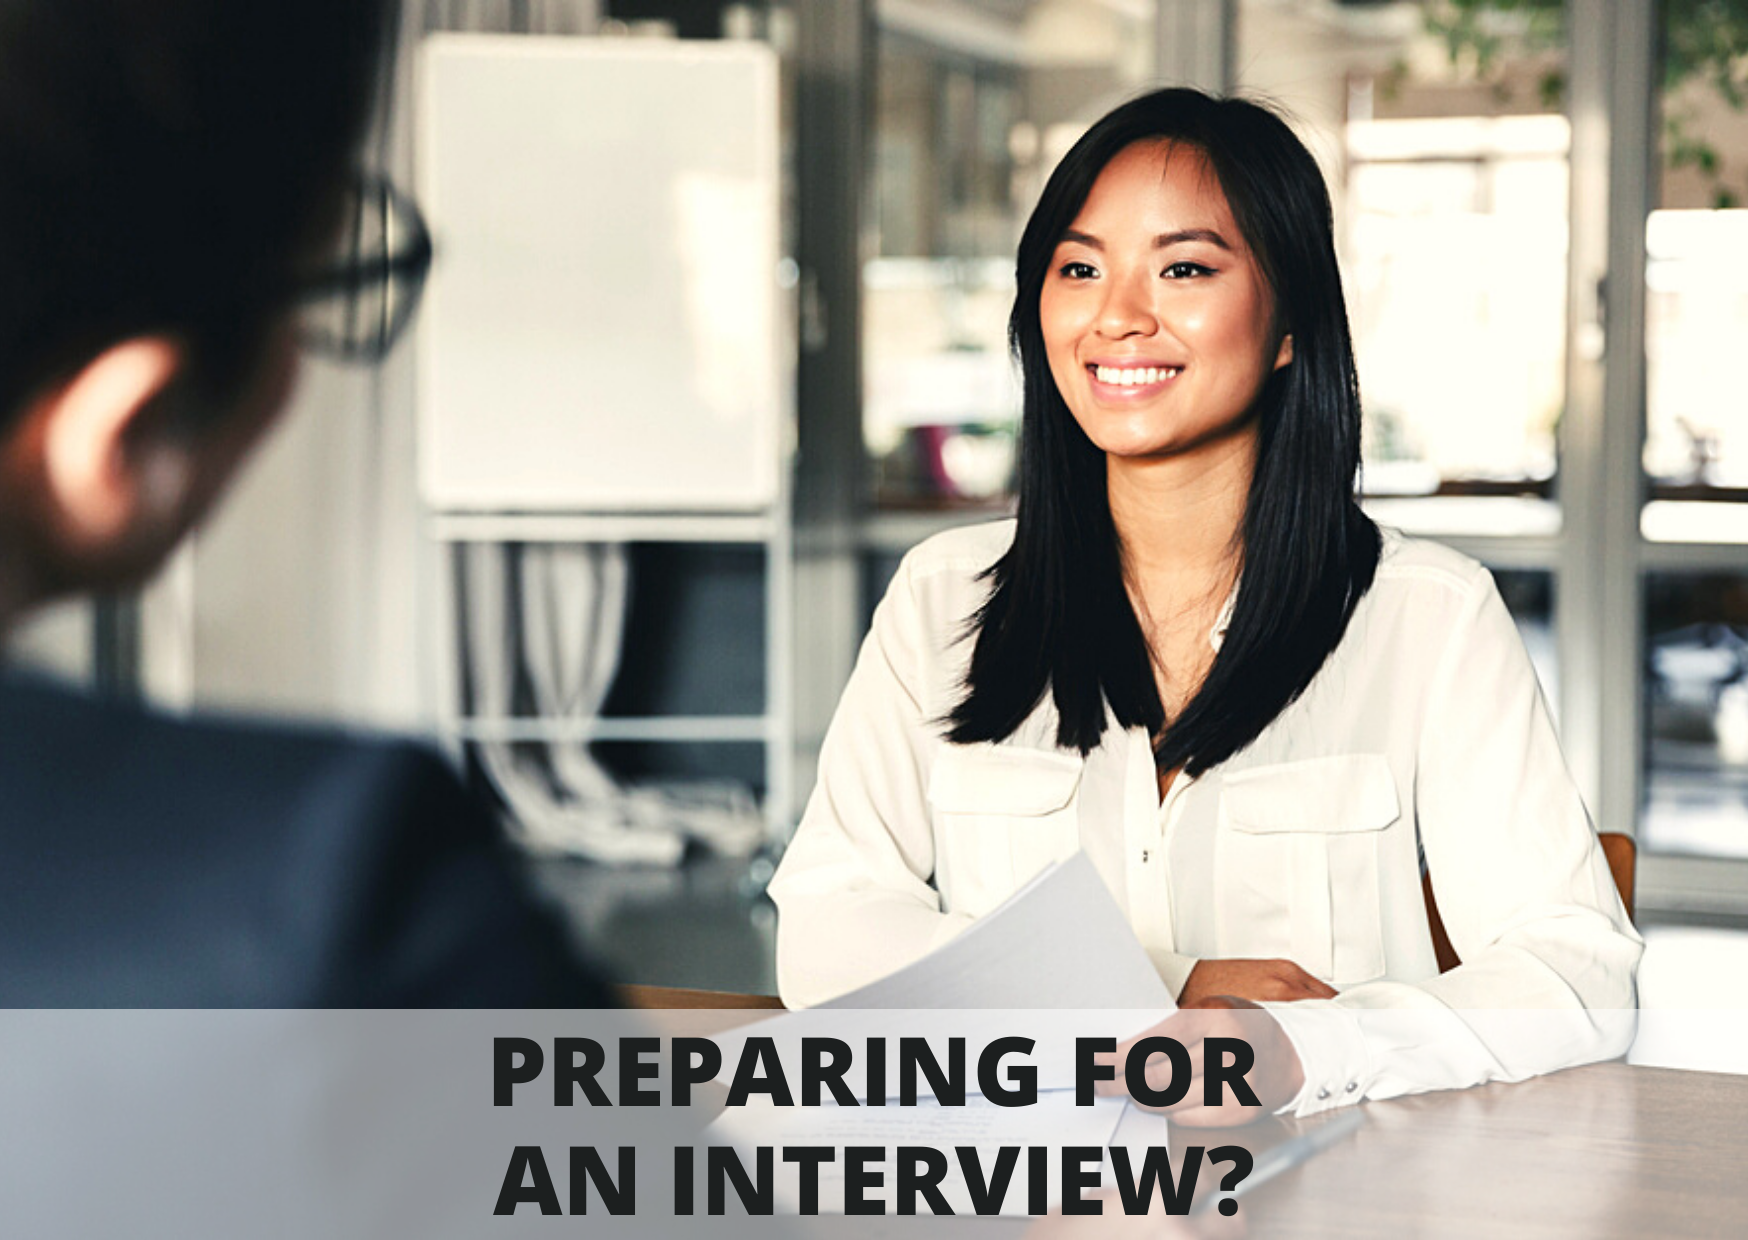 4 TIPS FOR A SUCCESSFUL INTERVIEW!